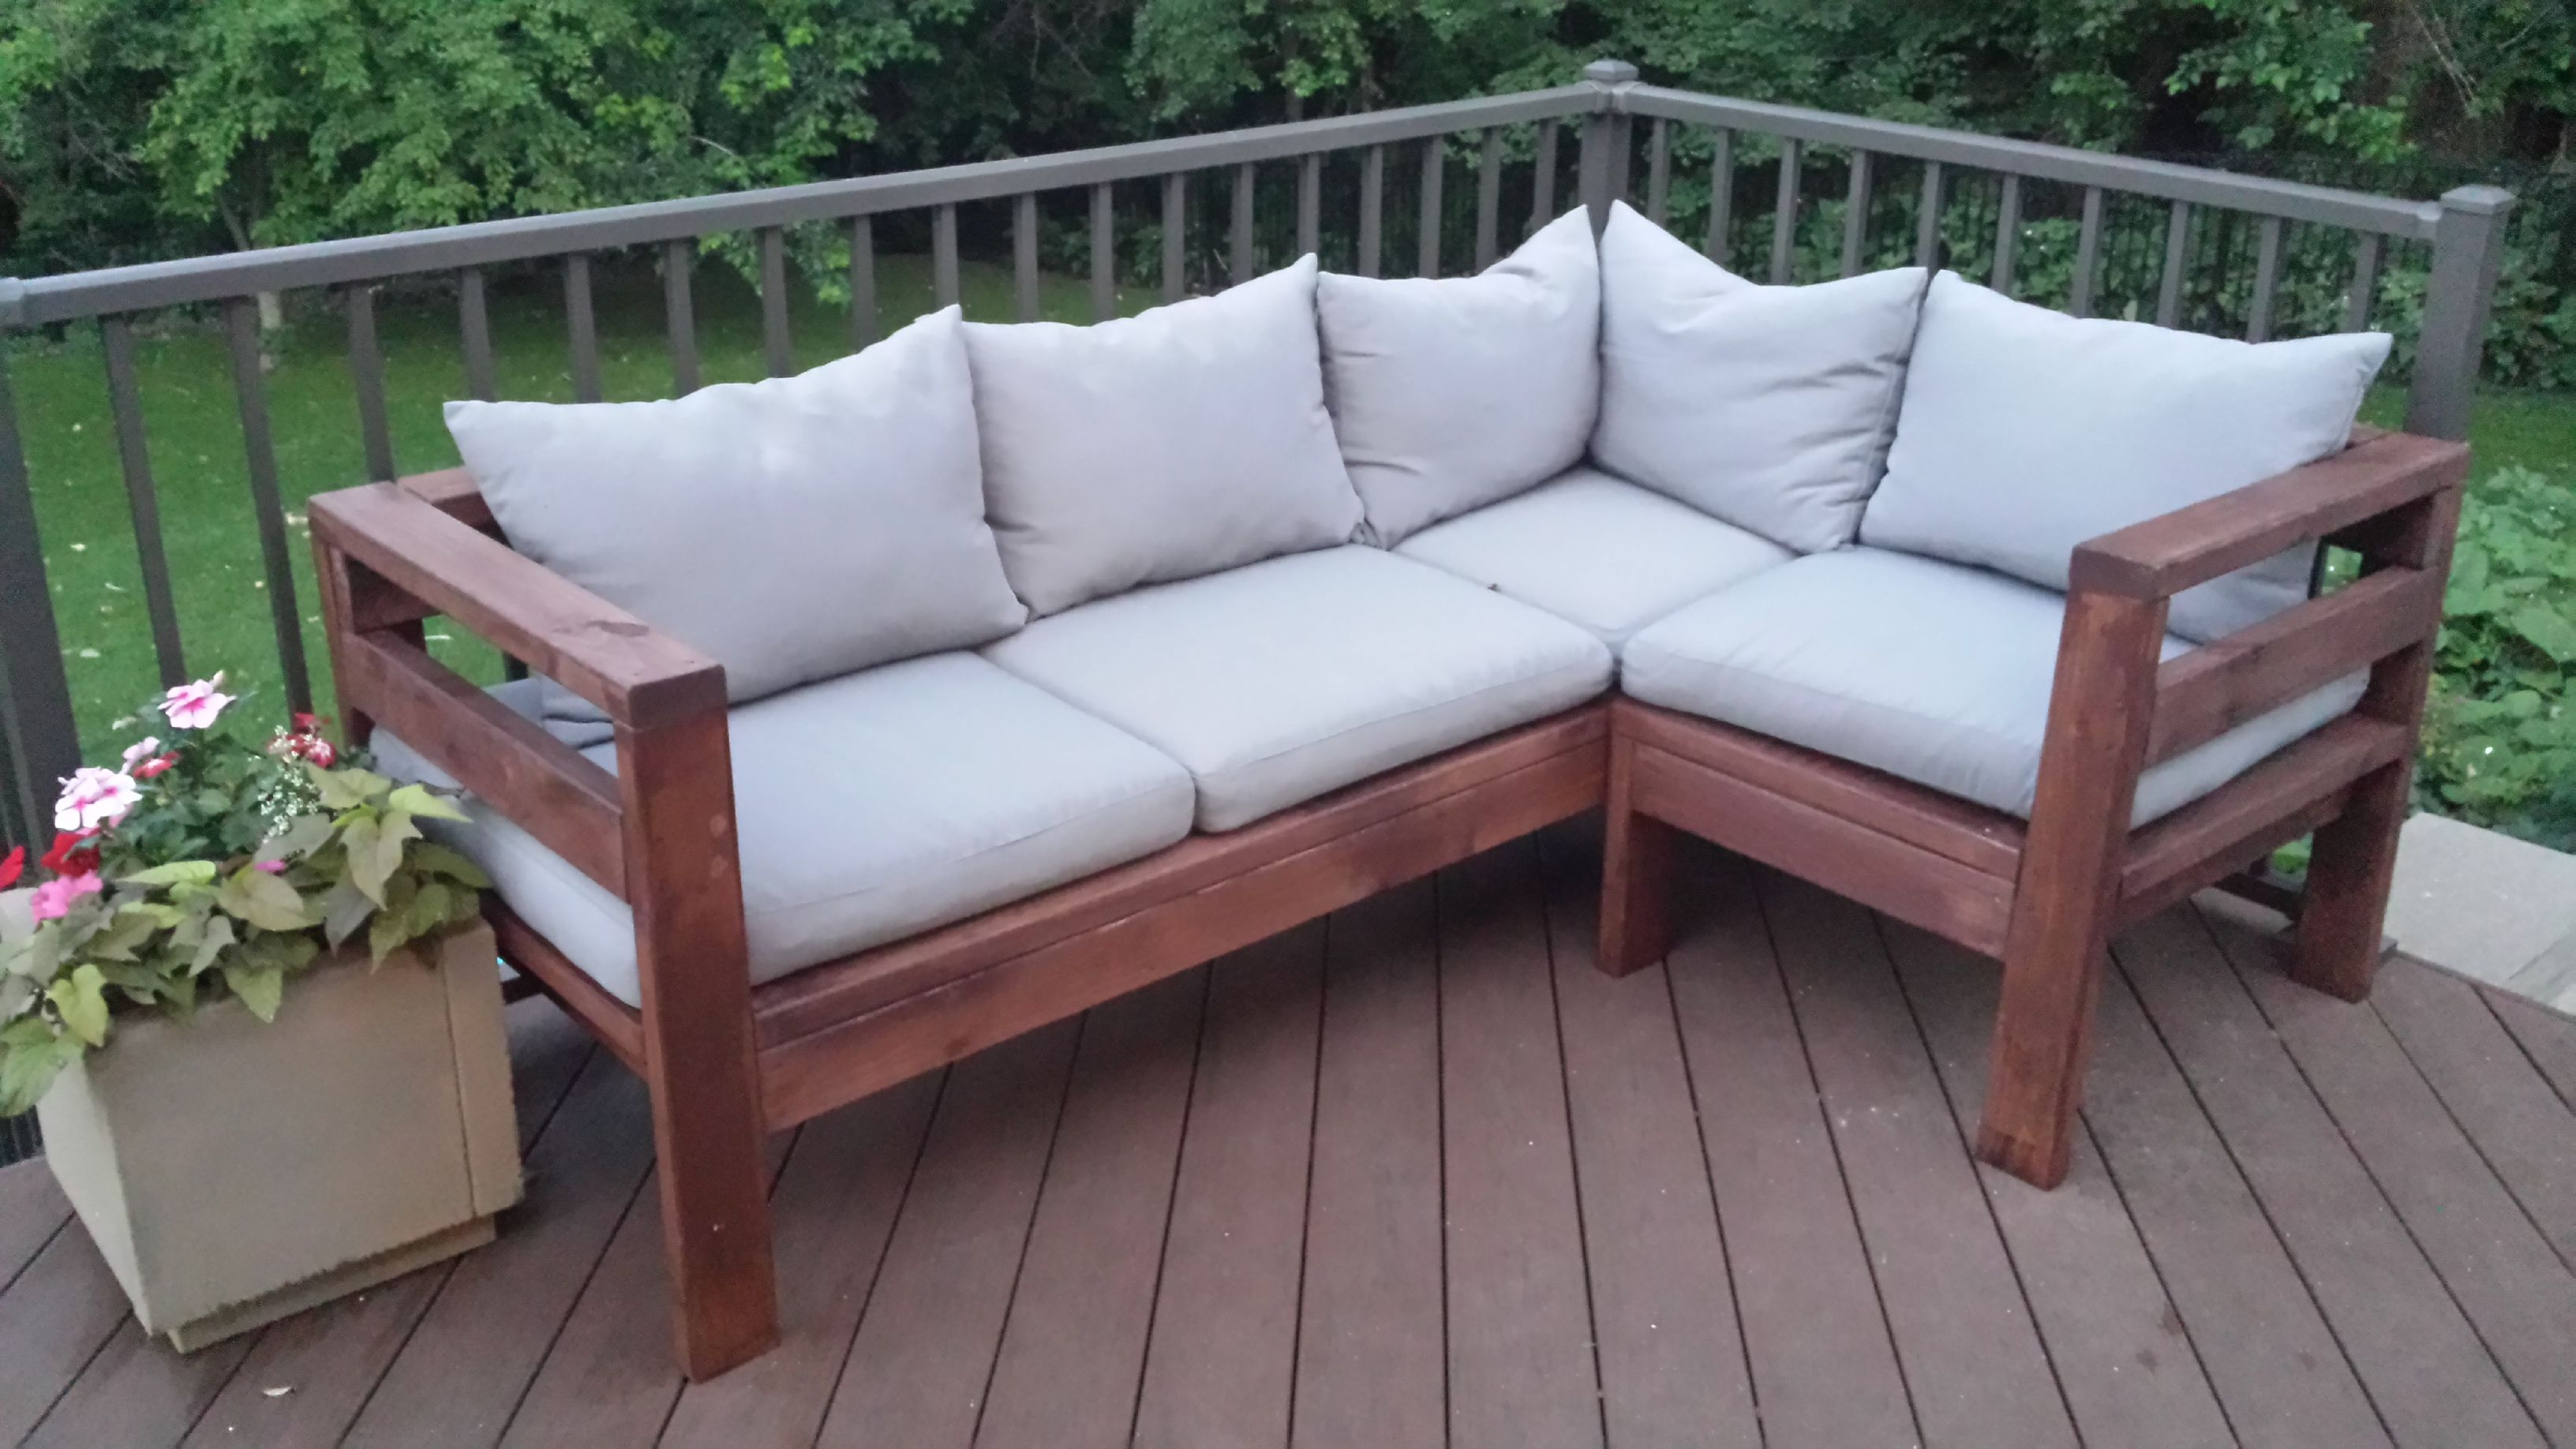 diy 2x4 sectional sofa how to patio furniture